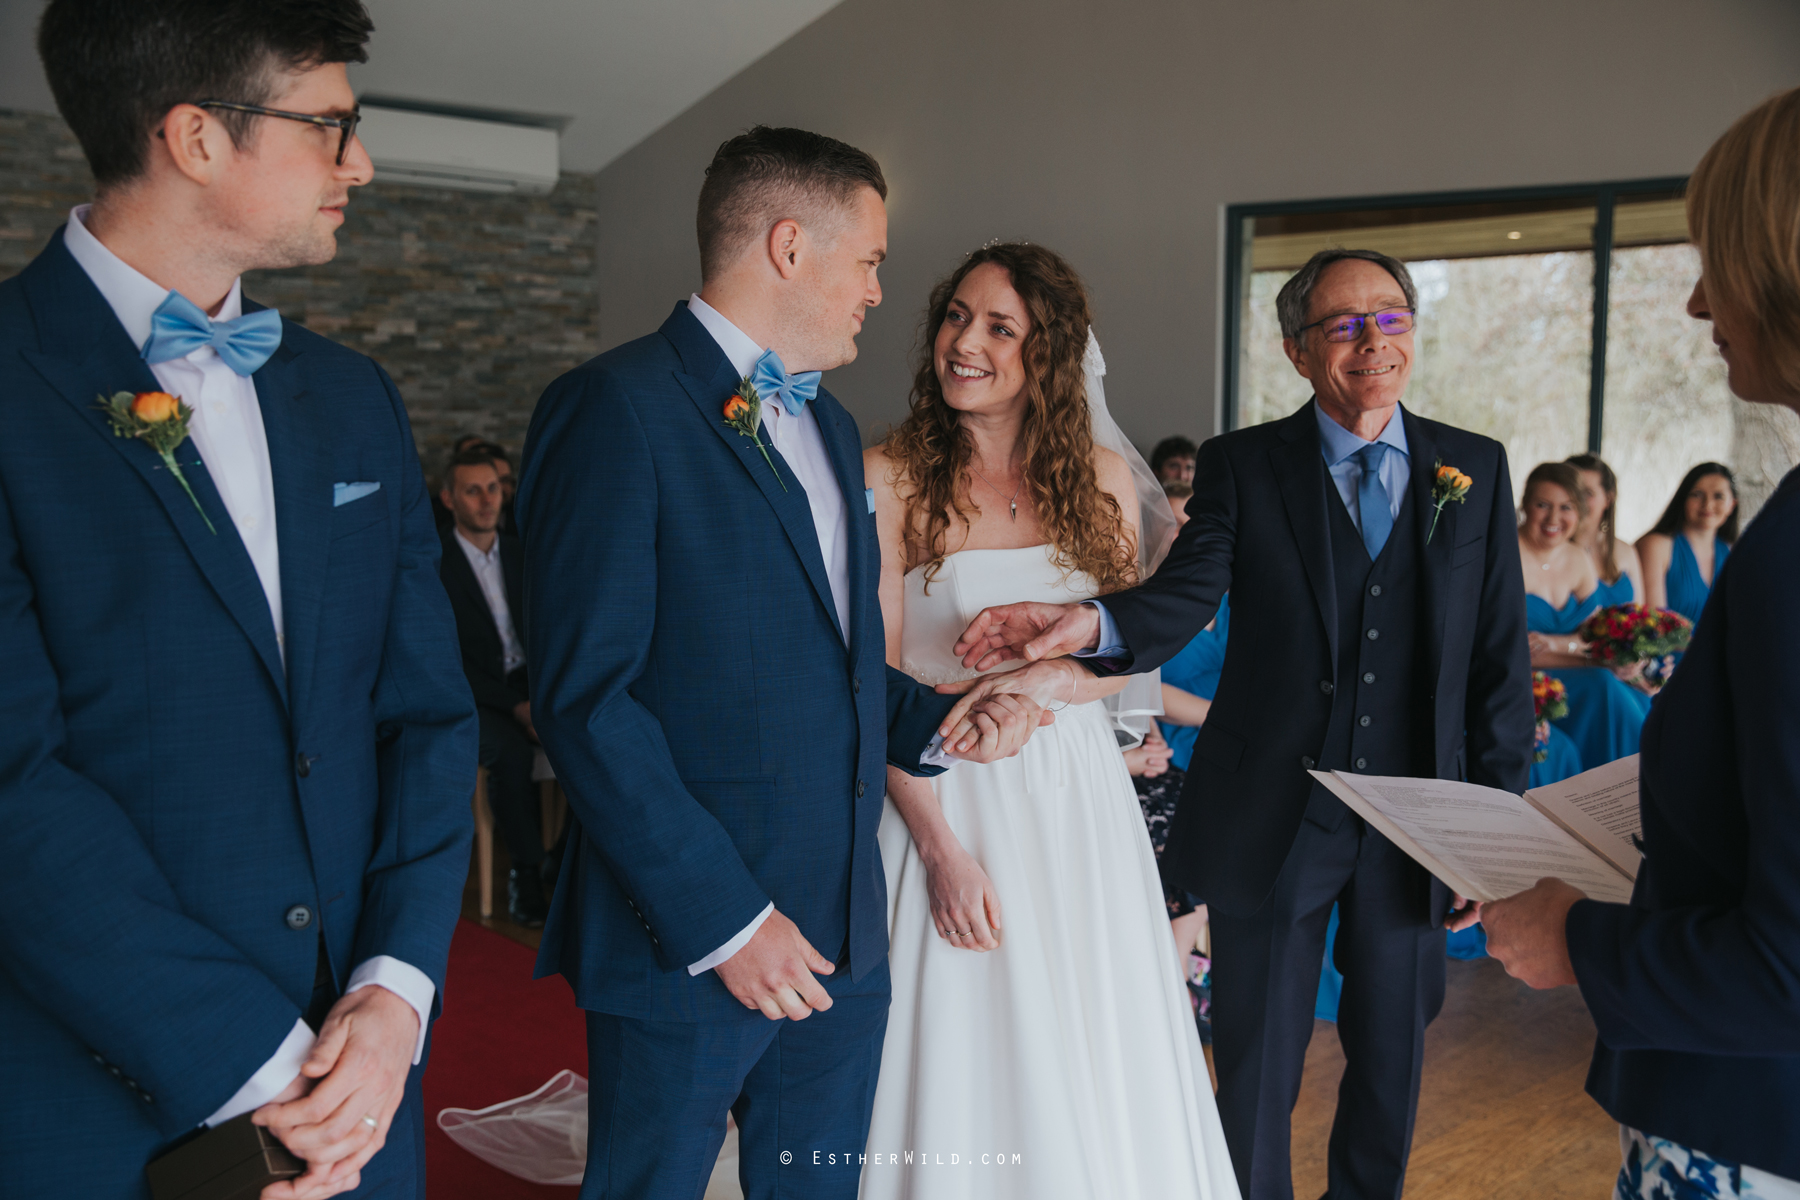 The_BoatHouse_Wedding_Venue_Ormesby_Norfolk_Broads_Boat_Wedding_Photography_Esther_Wild_Photographer_IMG_1068.jpg